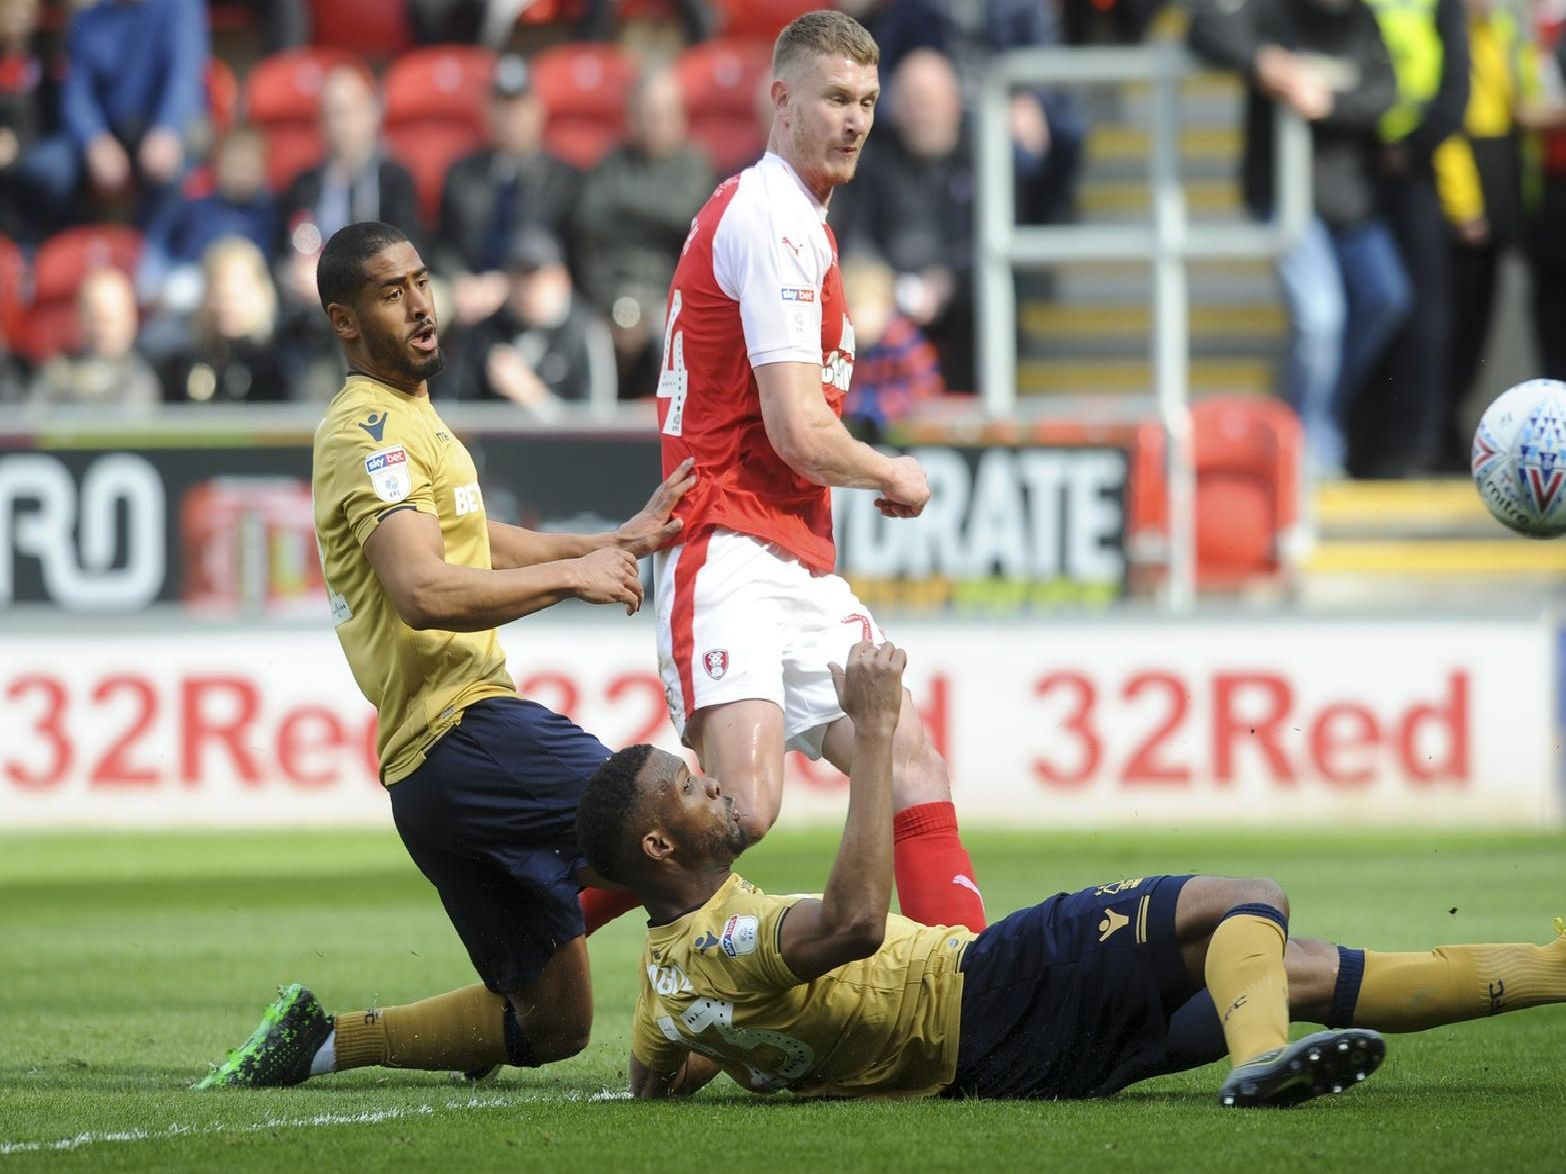 Michael Smith scored a goal to earn Rotherham a win and force his way into the team.